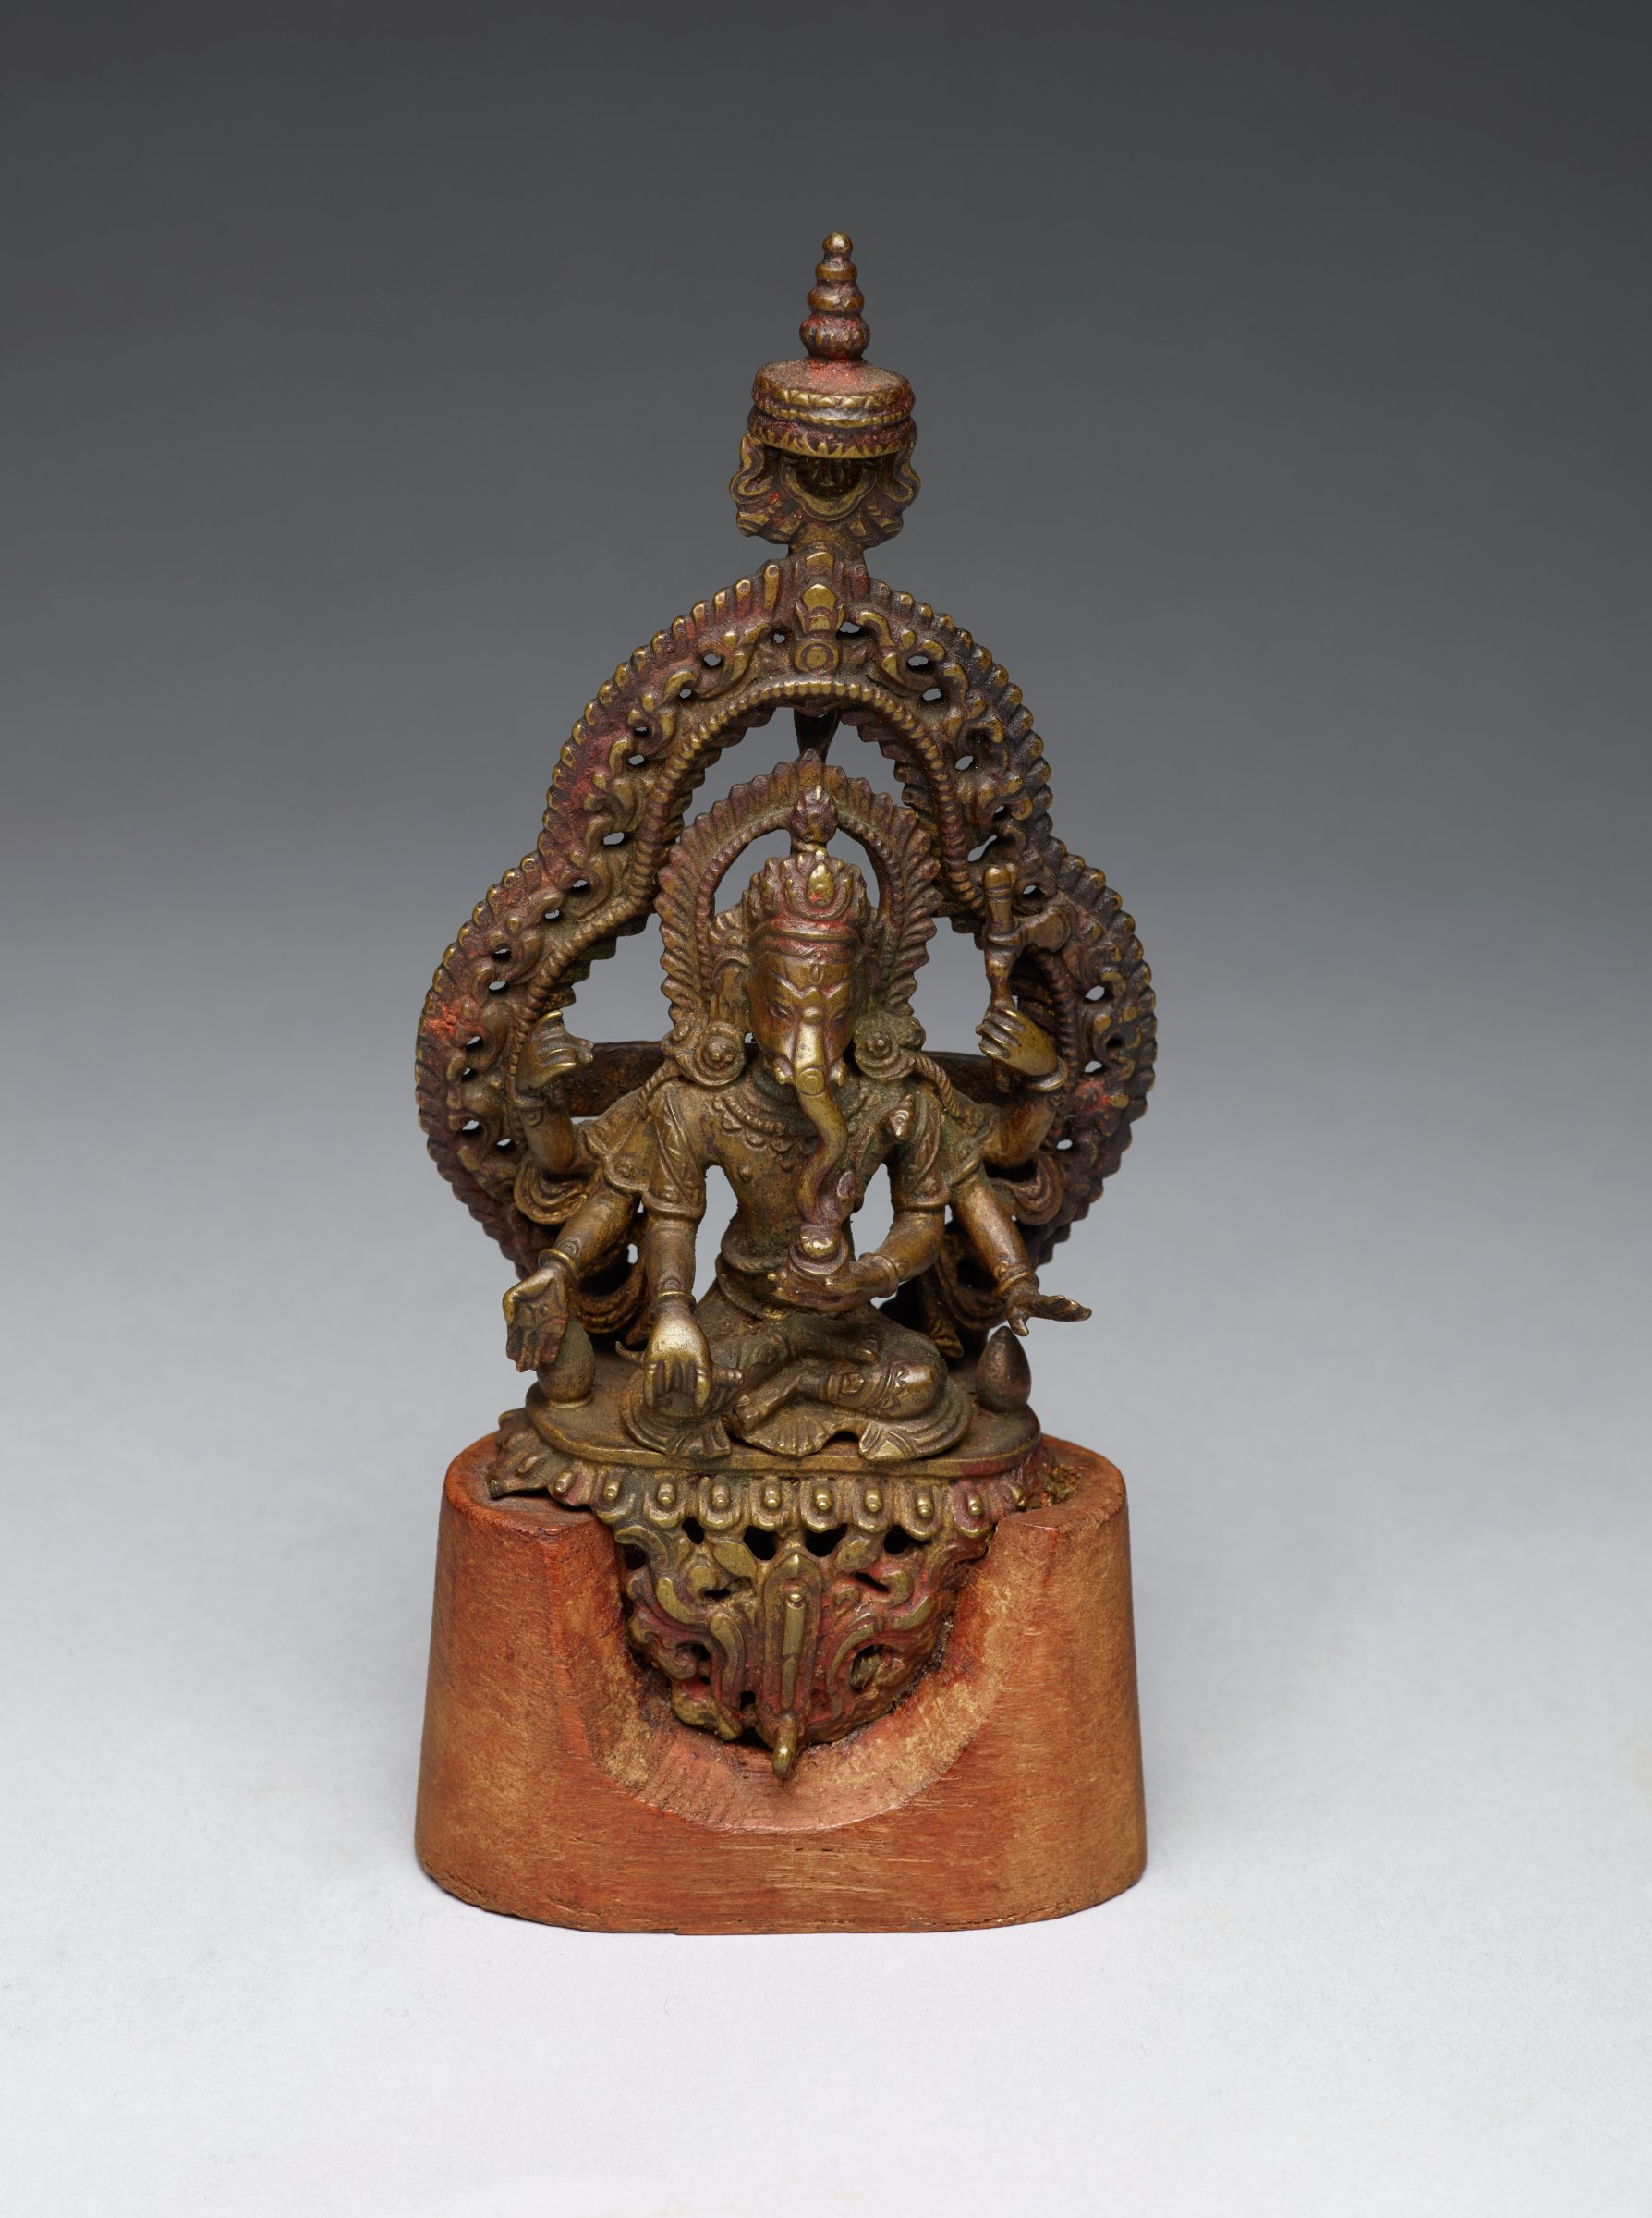 Seated elephant-headed figure with six arms, on lotus base, in front of ornate nebula topped by canopy; figure is mounted on small wooded base, and shows traces of vermilion - evidence of devotion.  A detailed cast in the round, with openwork in nebula